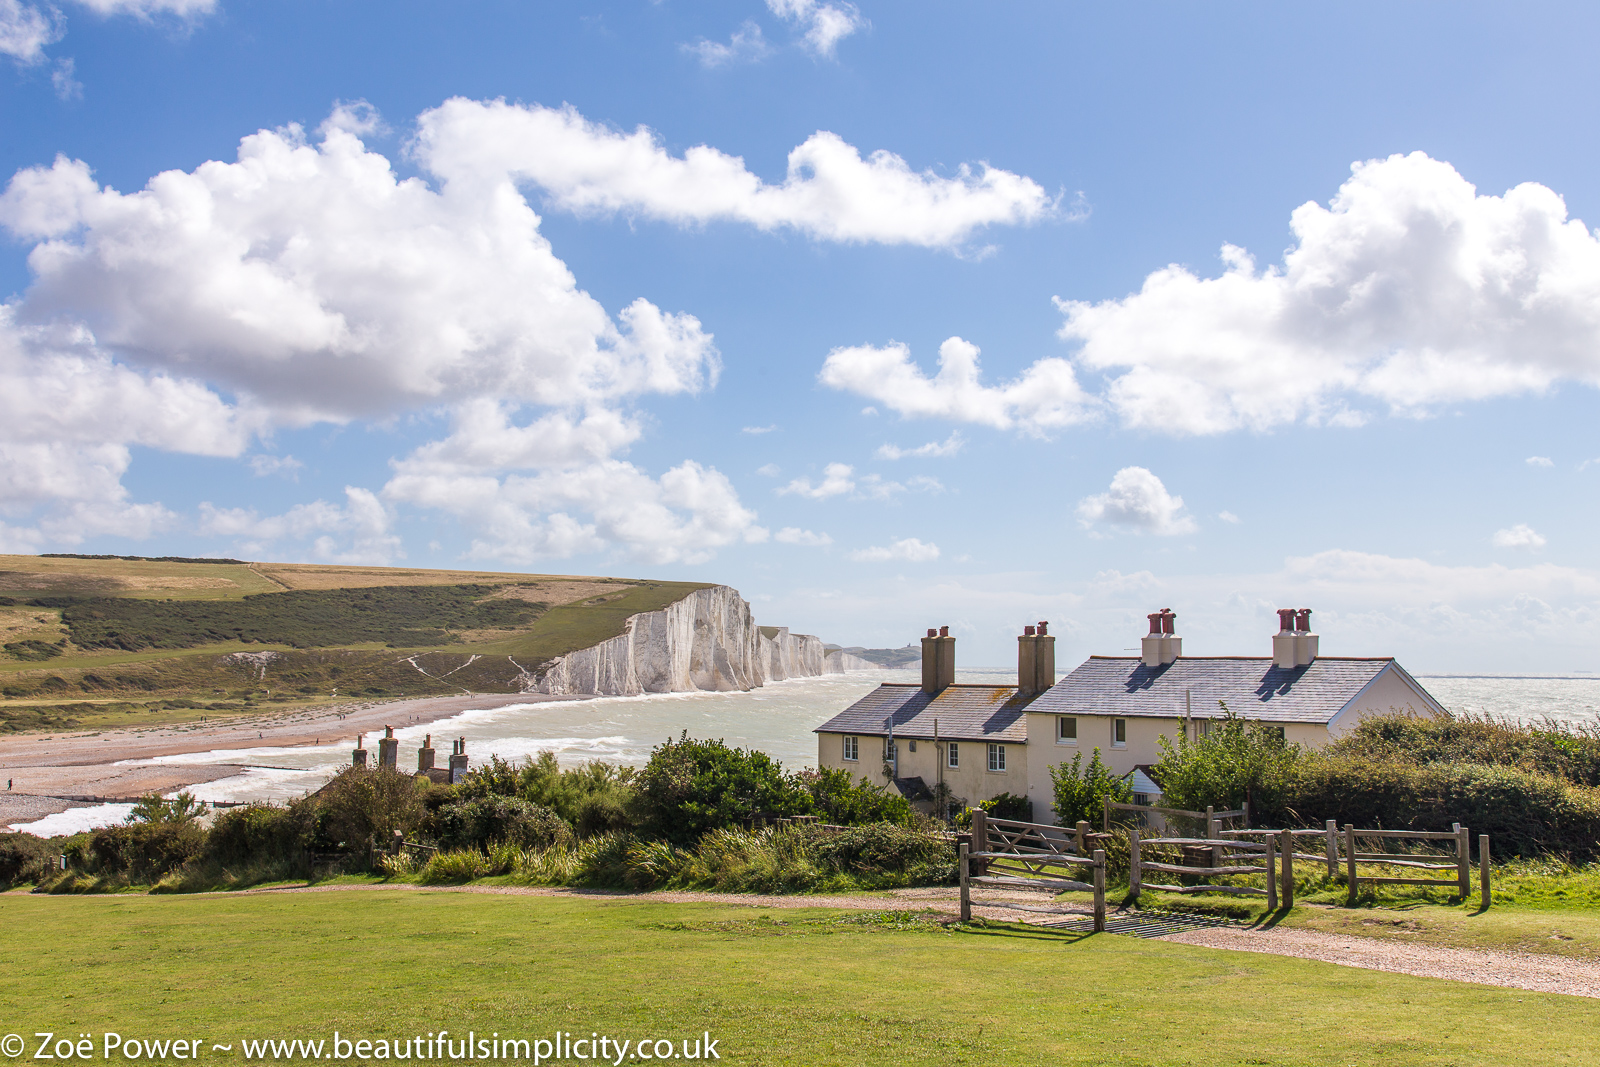 Cuckmere Haven, East Sussex | Chronic Fatigue Syndrome (CFS)/ME - My Story - Part 1 of 3